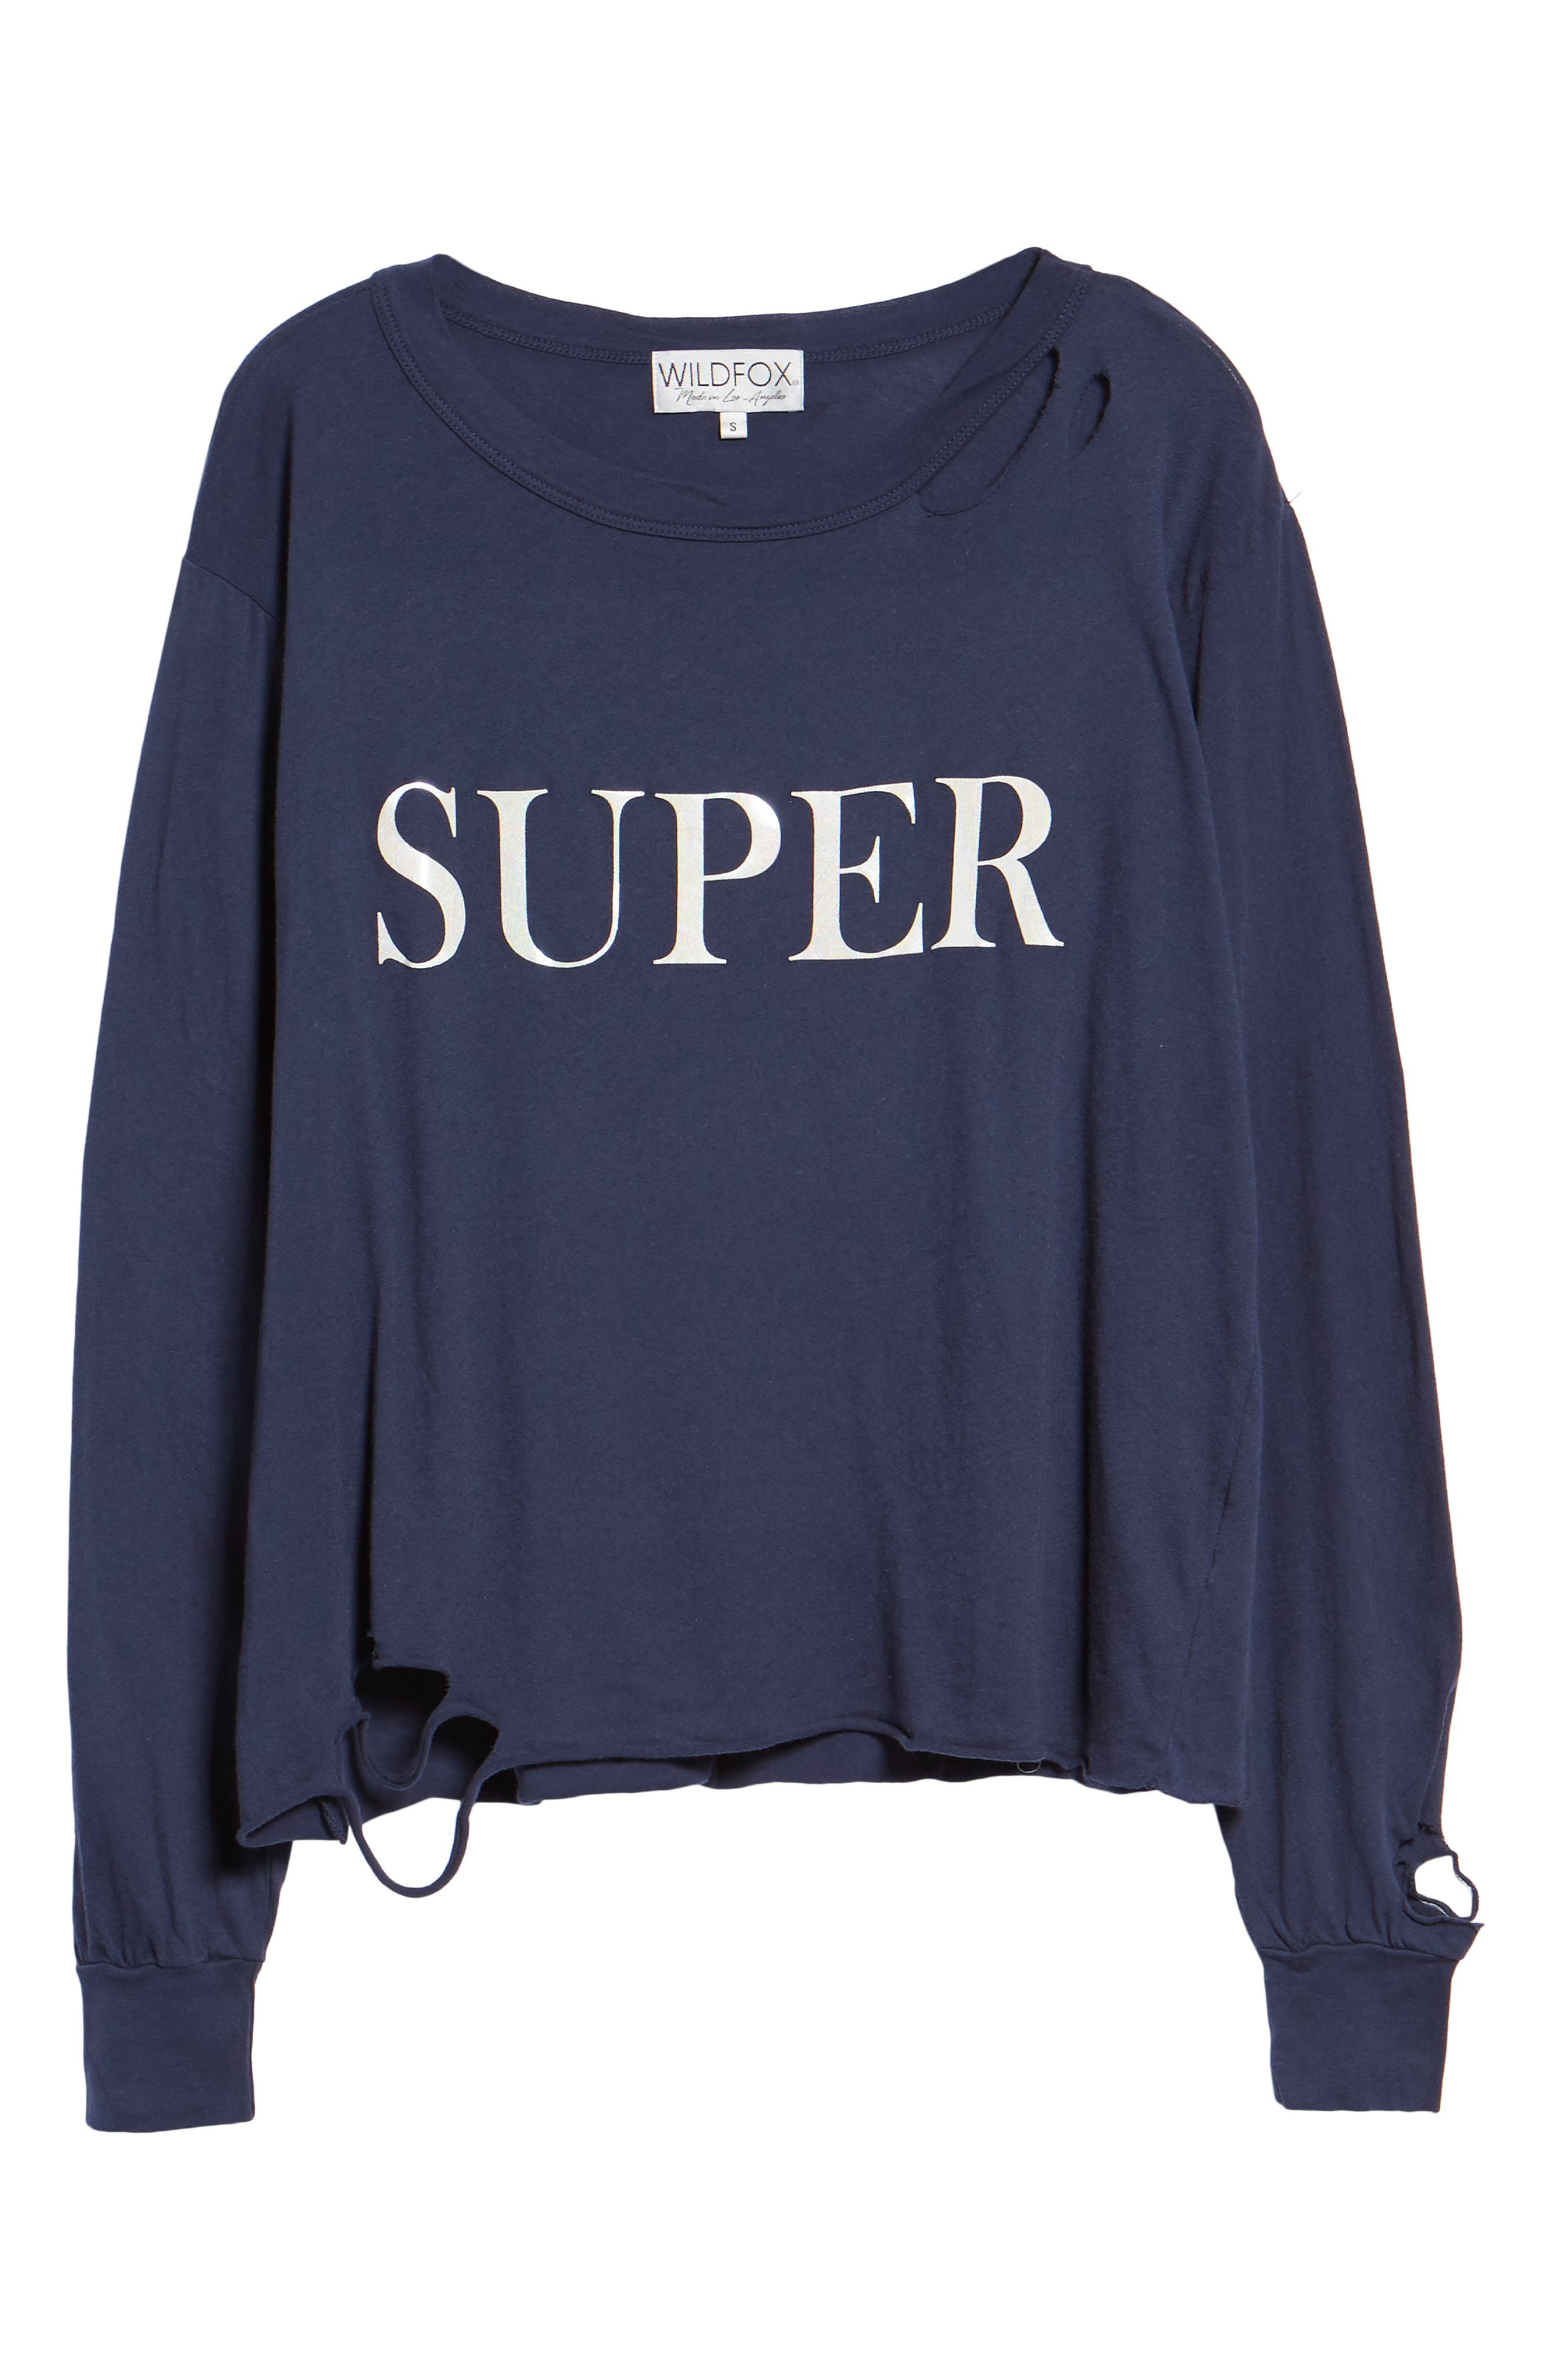 Stellar - Super Ripped Graphic Tee,                             Alternate thumbnail 6, color,                             OXFORD